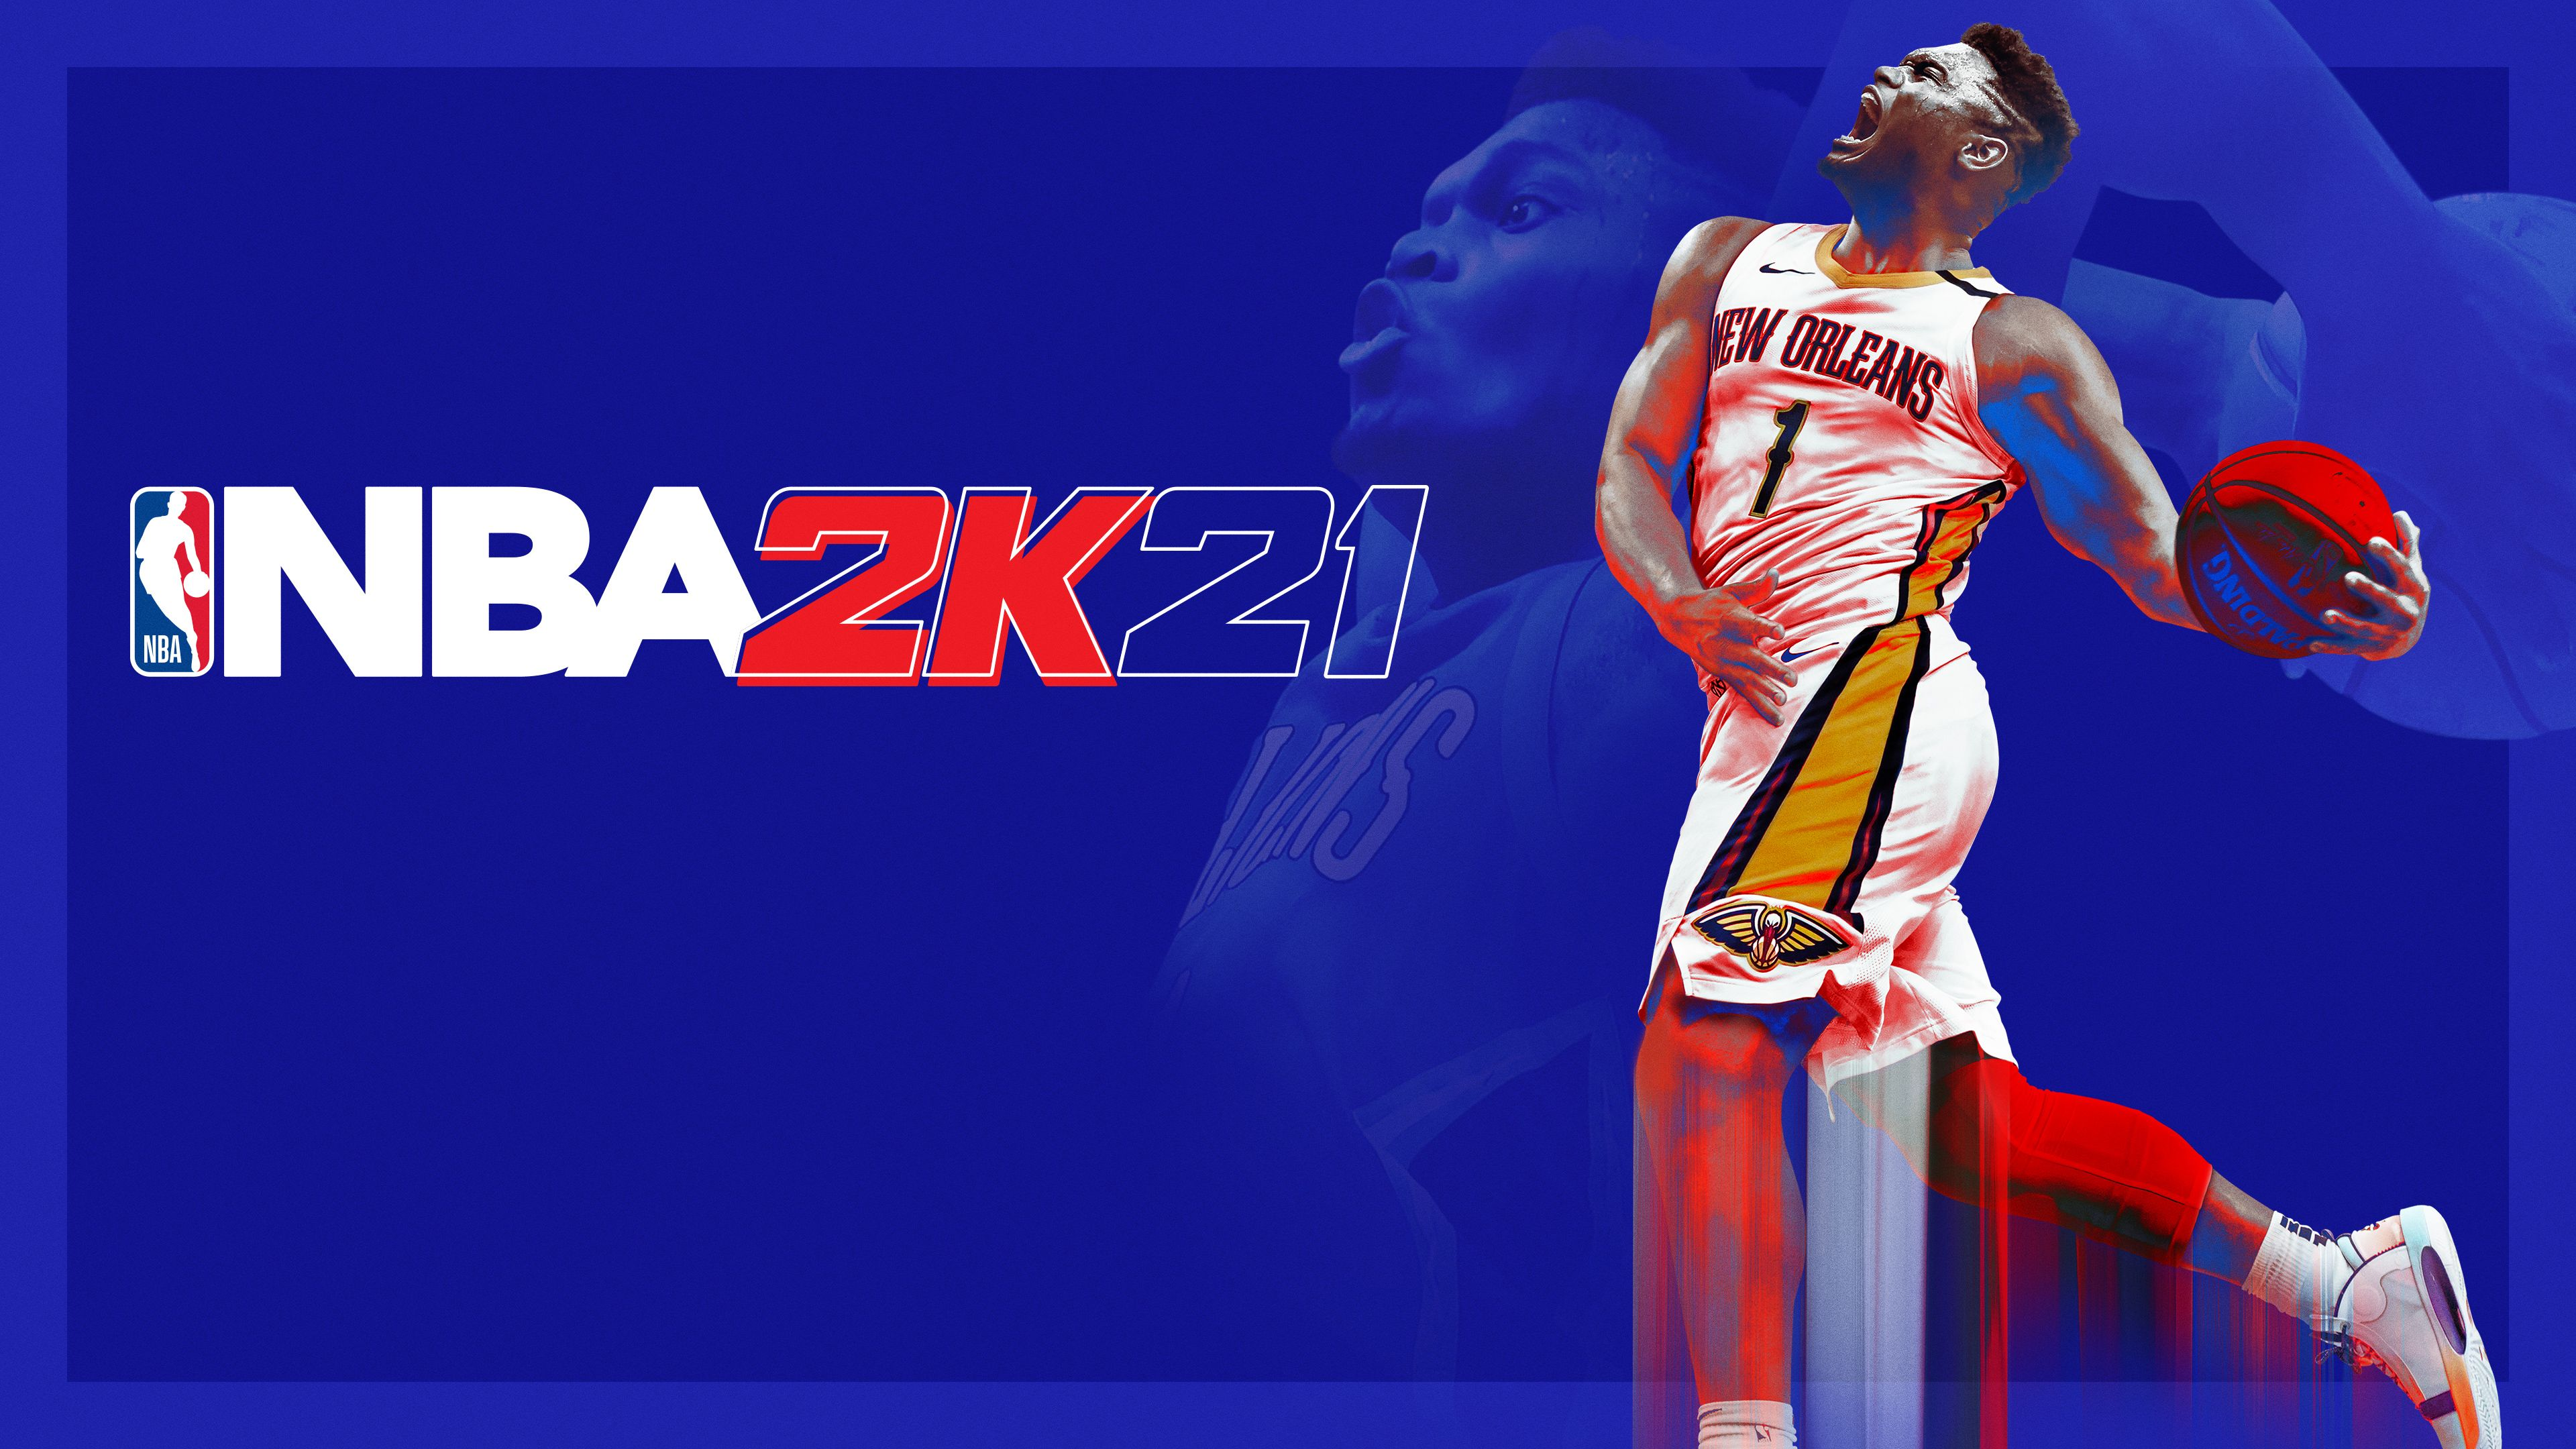 NBA 2K21 Next Generation